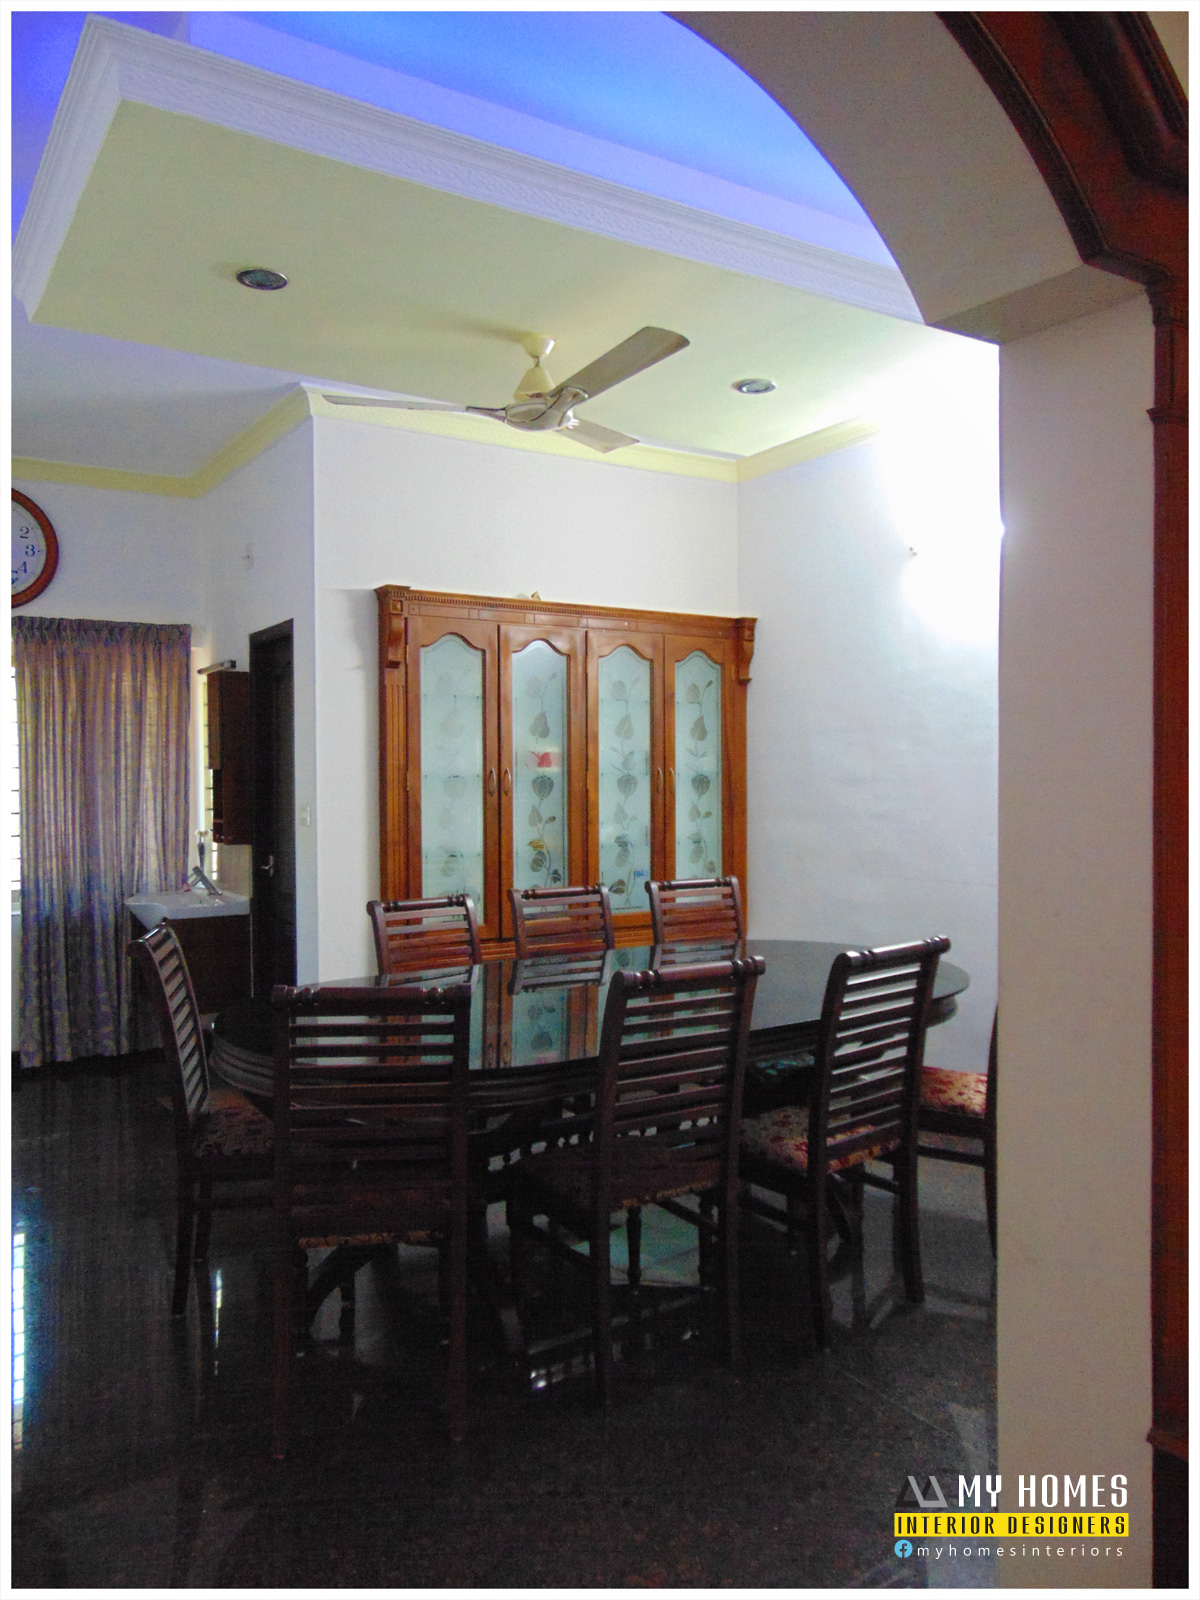 Wooden door style in kerala door designs photosm images for Dining table interior design